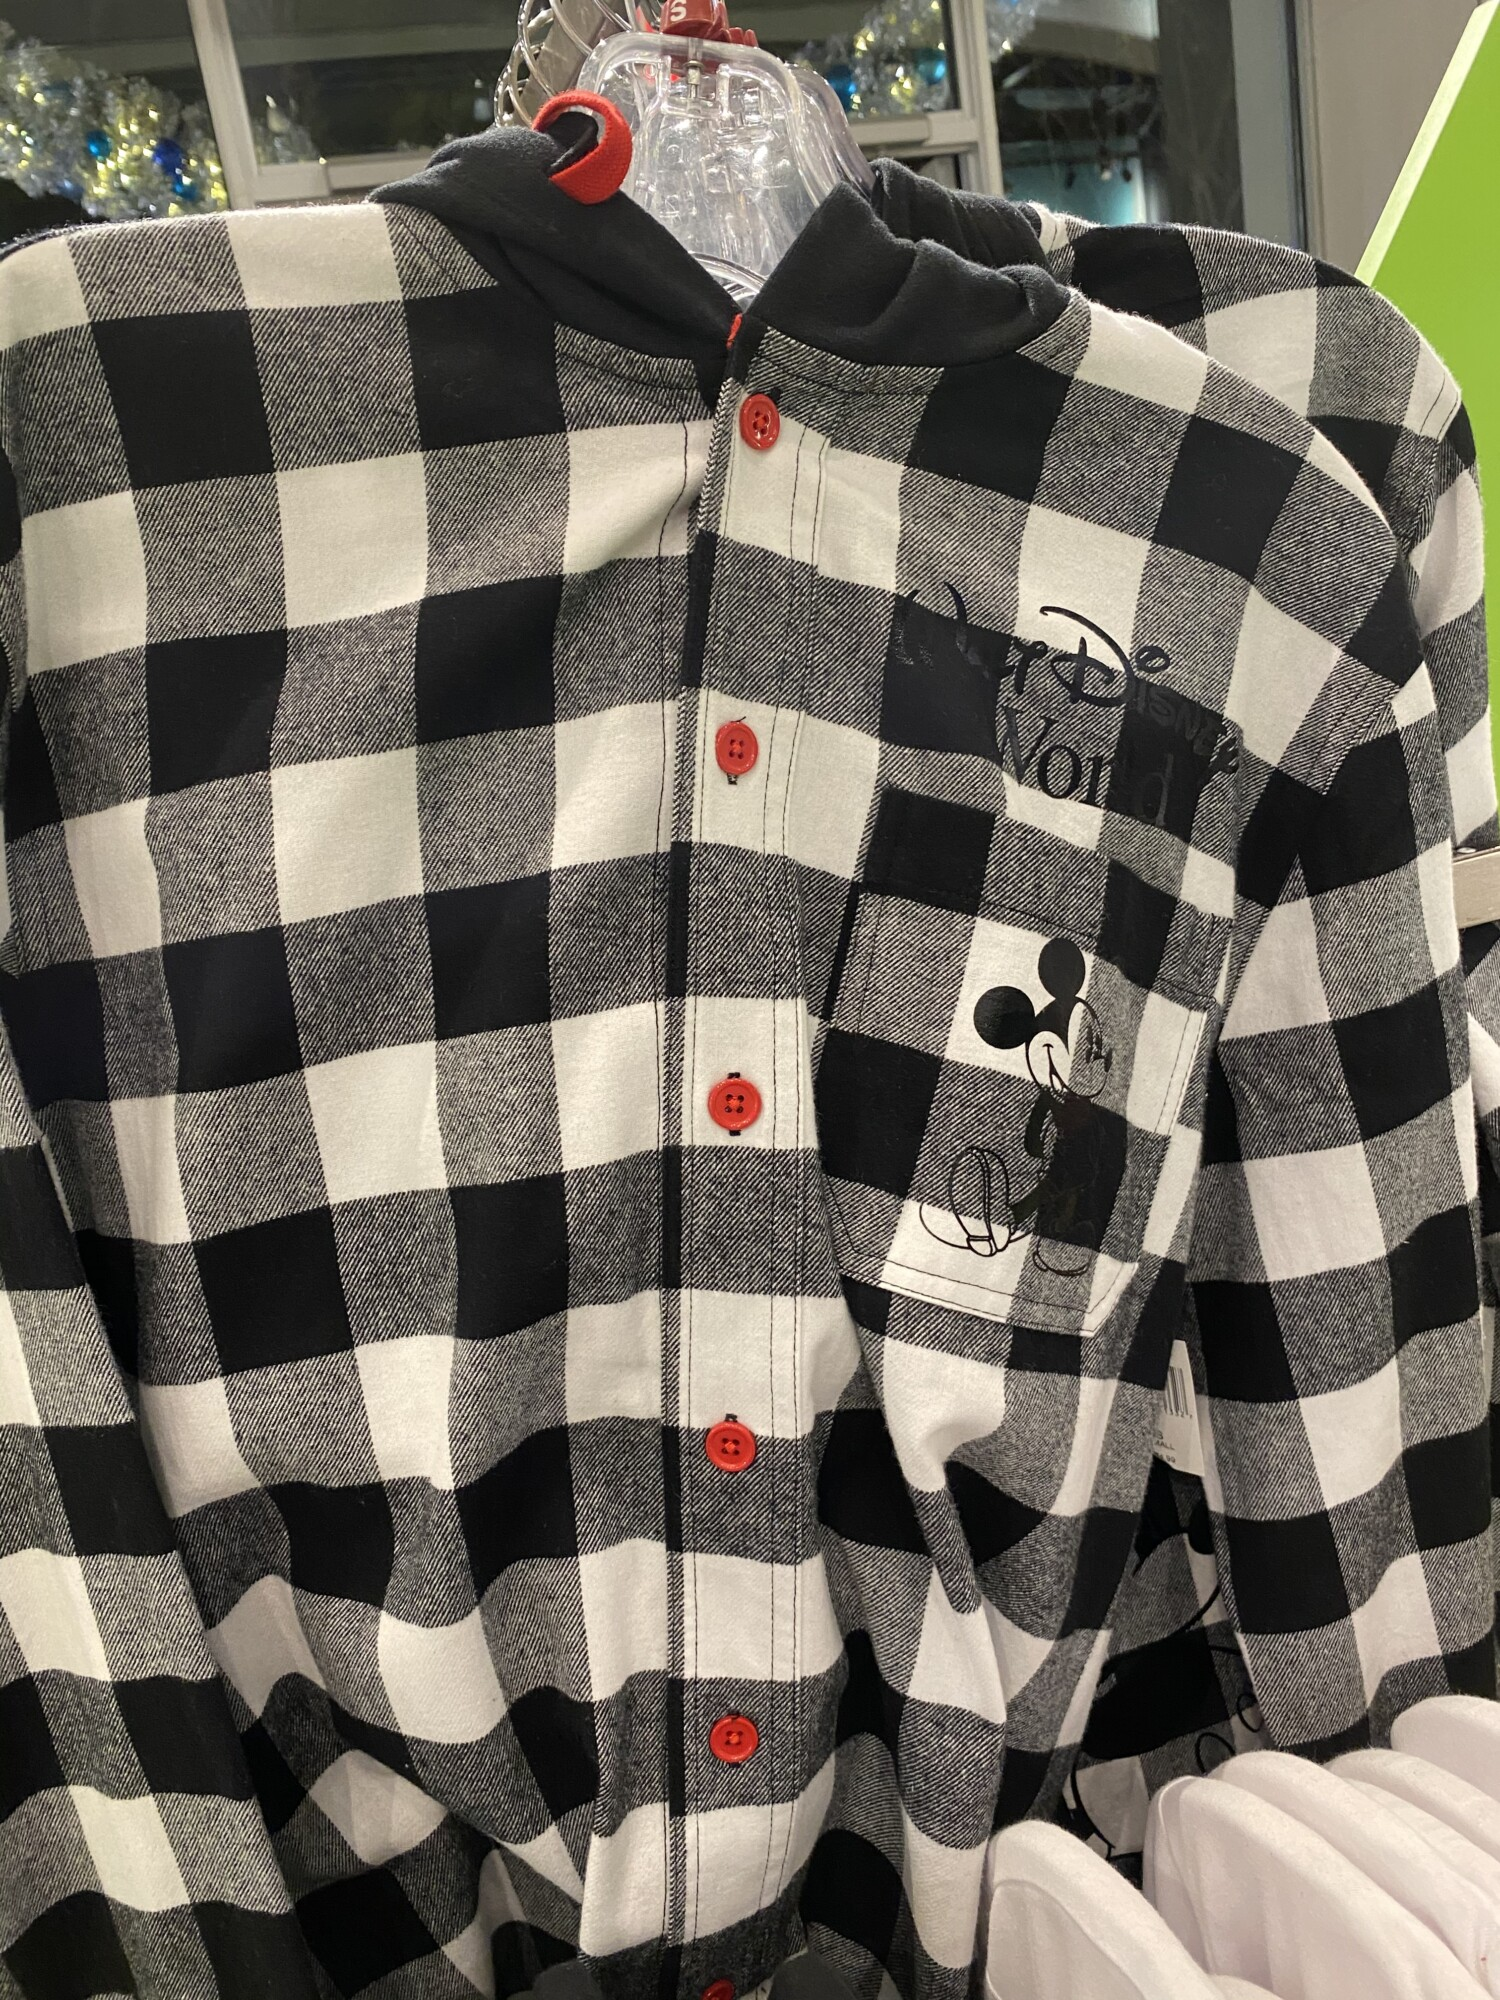 Mad for Plaid! More Fun Merch at Disney Springs 13